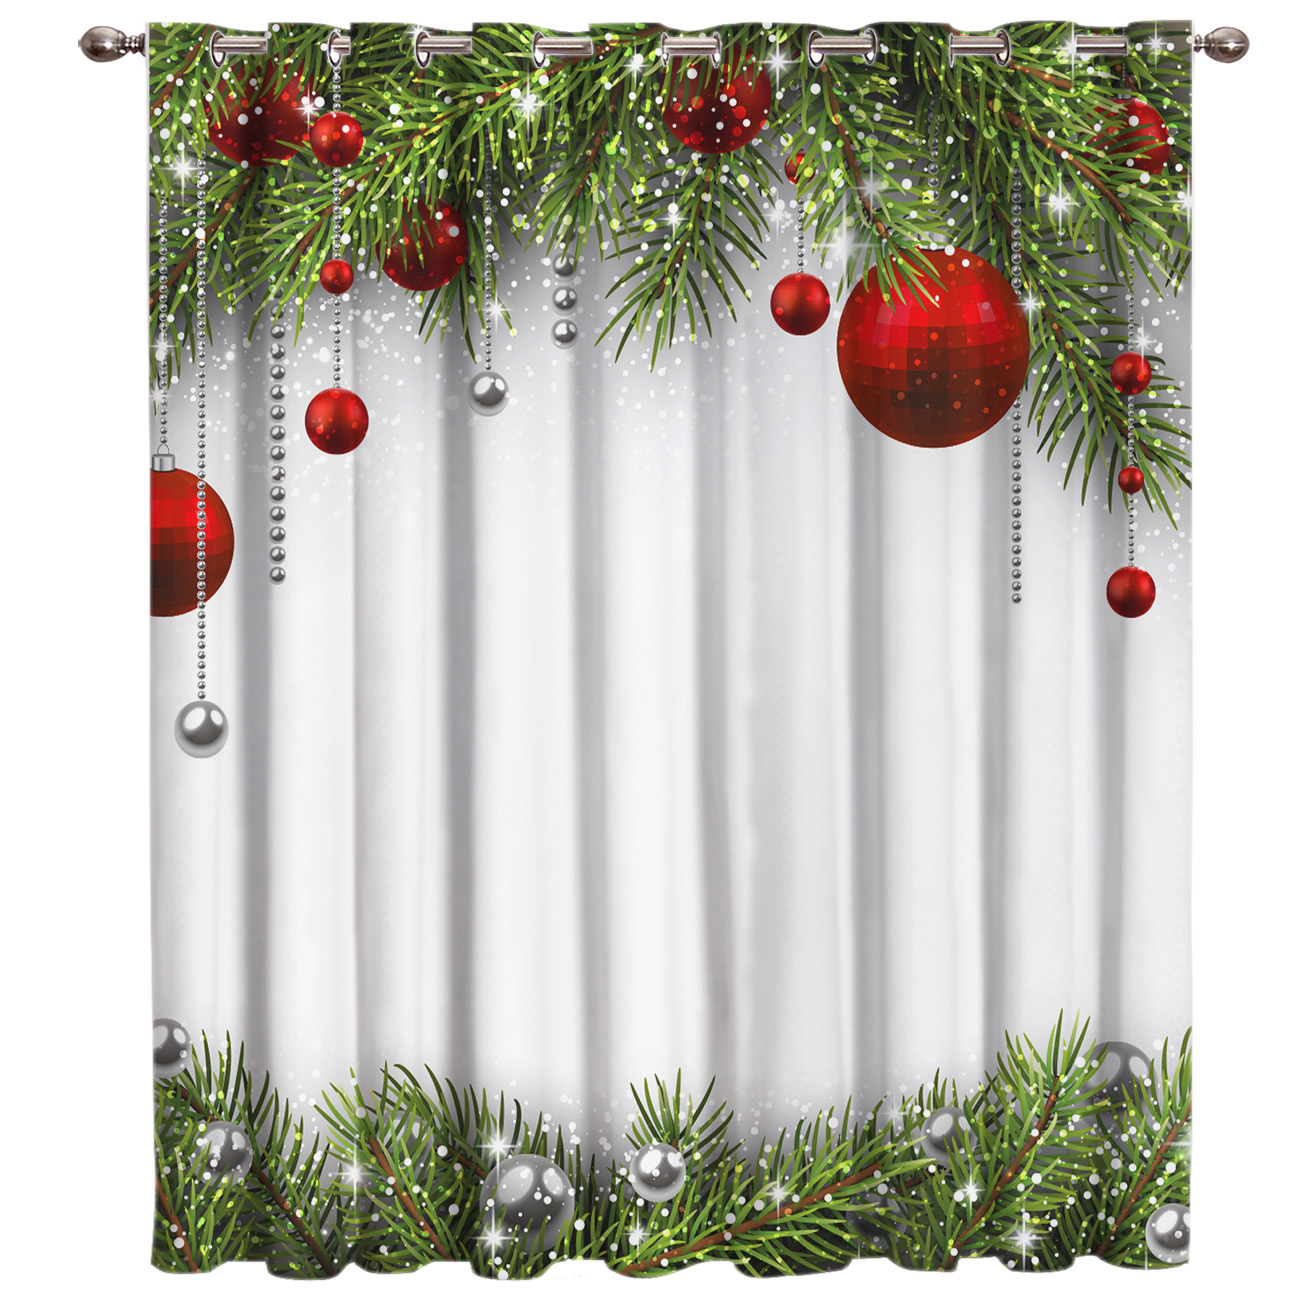 US $13.36 16% OFF|Snowing Winter Christmas Holiday Room Curtains Large  Window Living Room Curtains Kitchen Indoor Fabric Window Treatment Ideas-in  ...